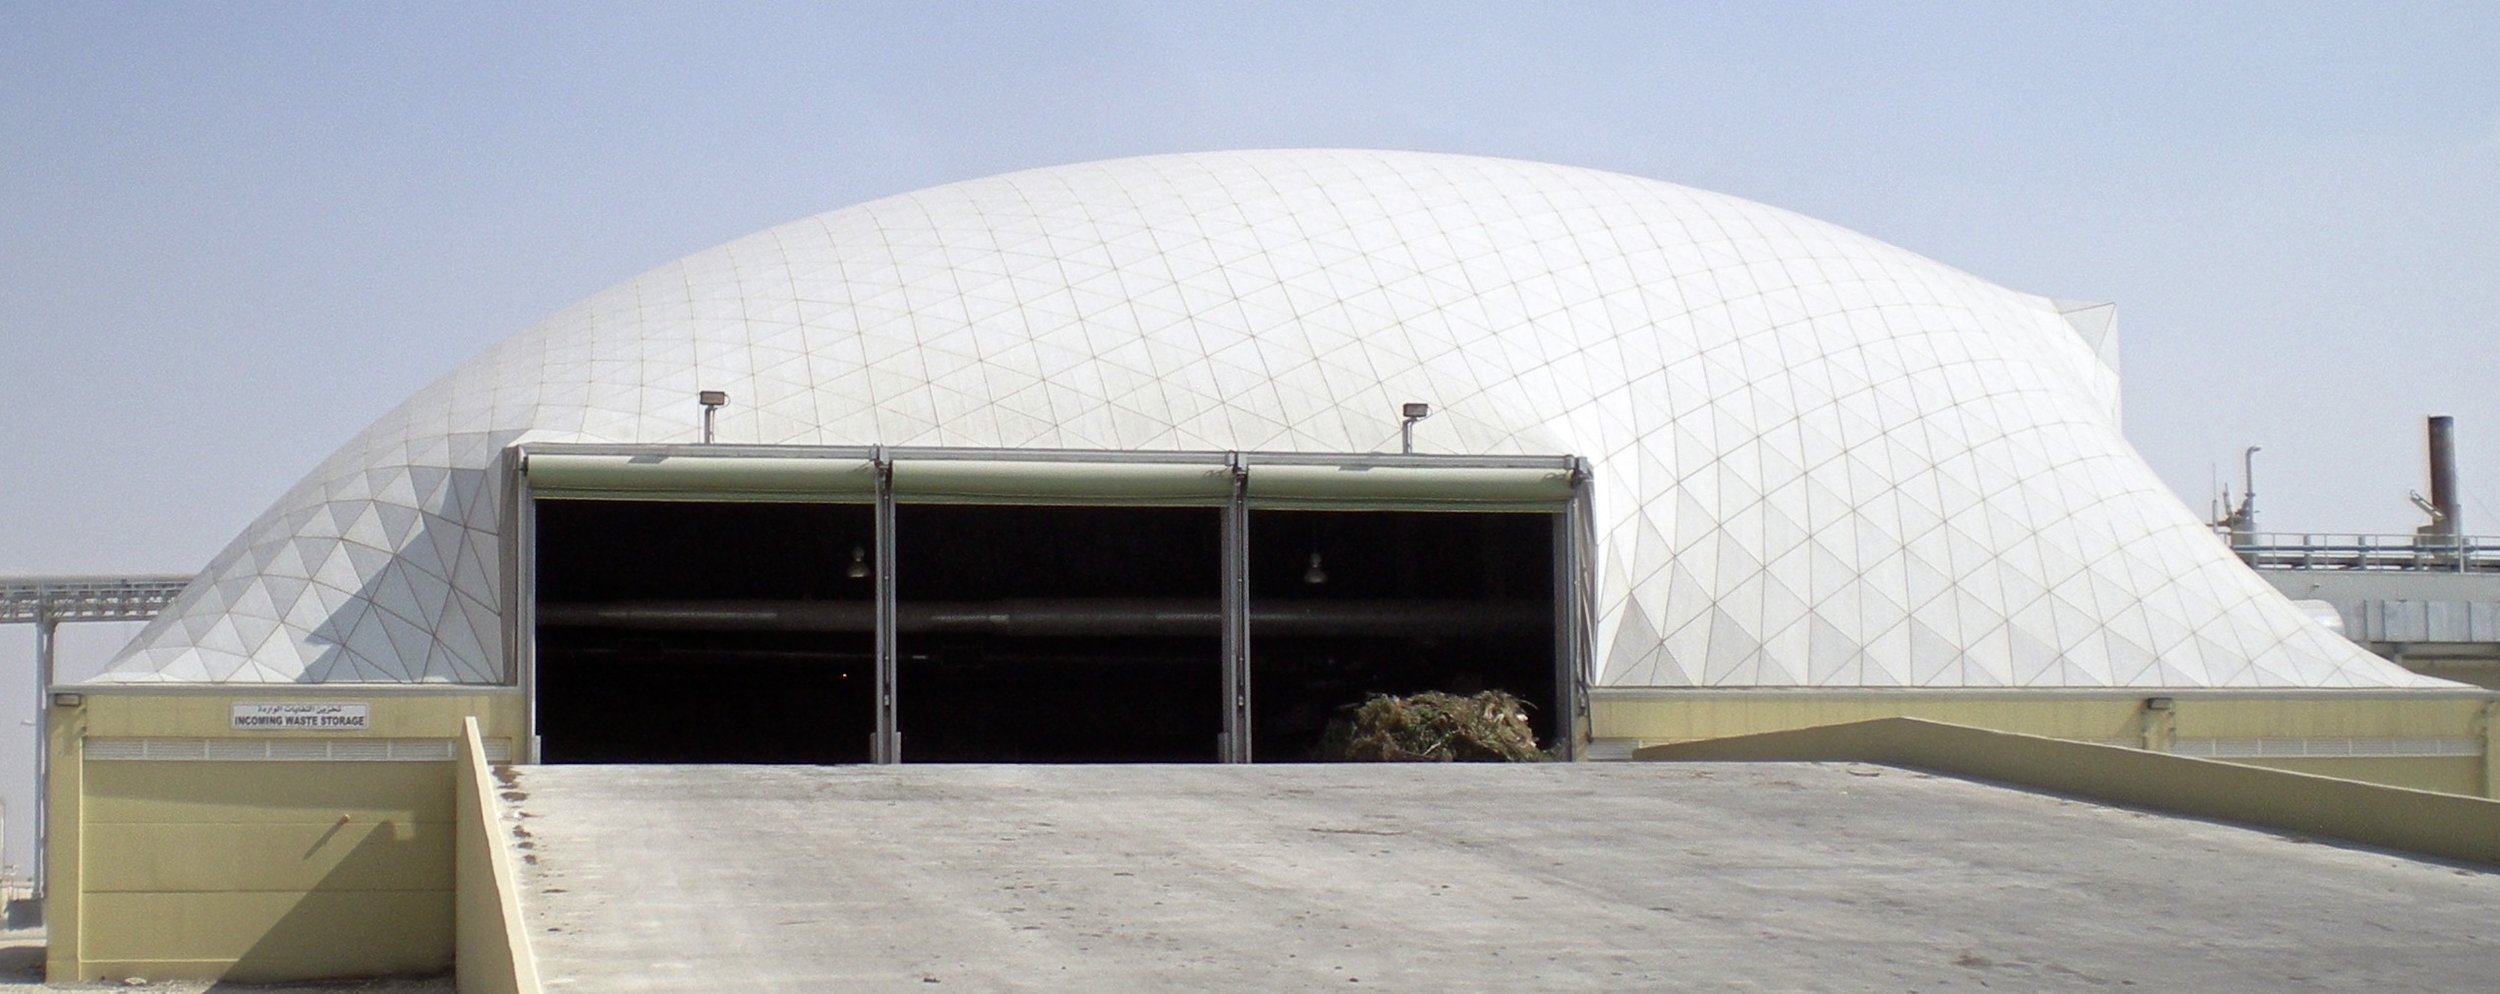 A Geometrica Freedome covers the Domestic Solid Waste Management Center in Qatar